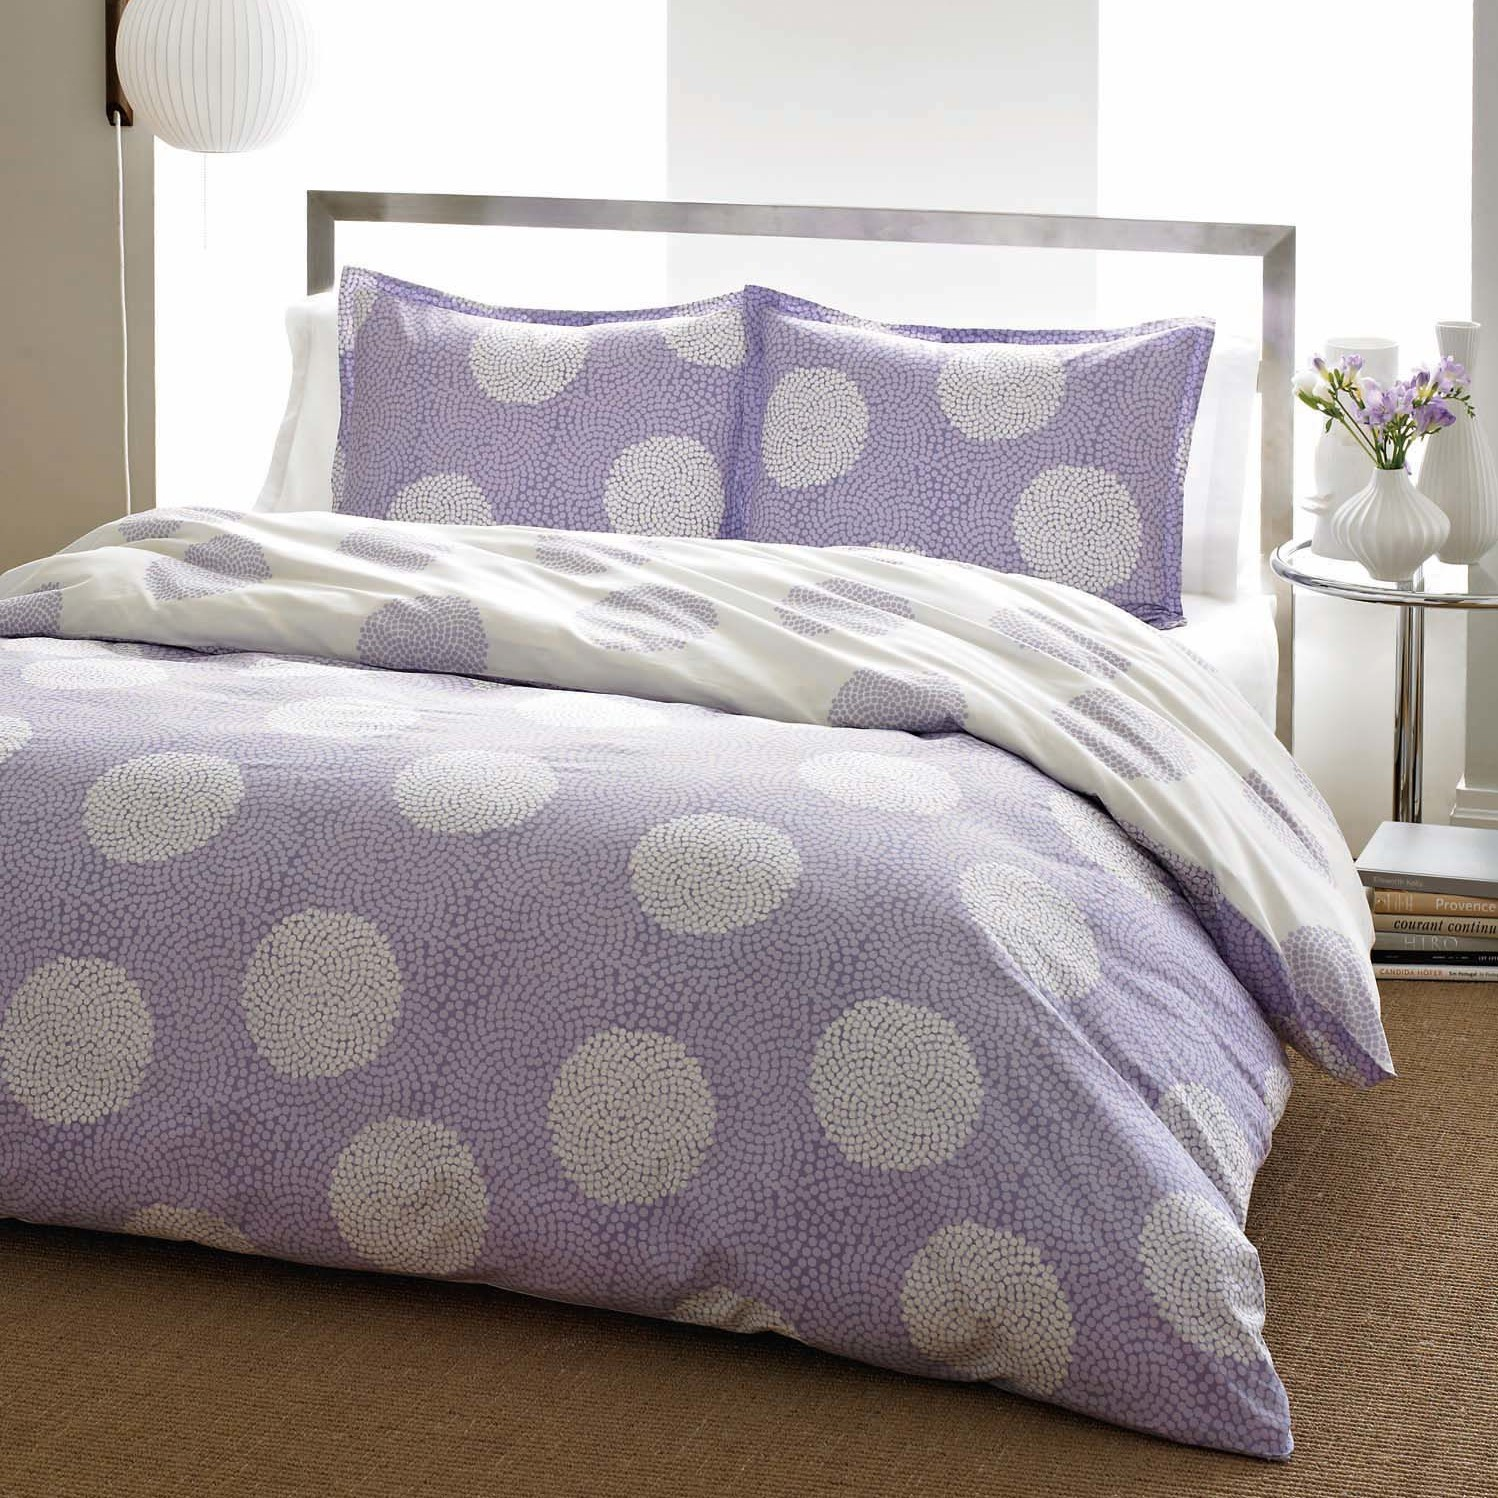 endearing comforters for teens with purple girls color